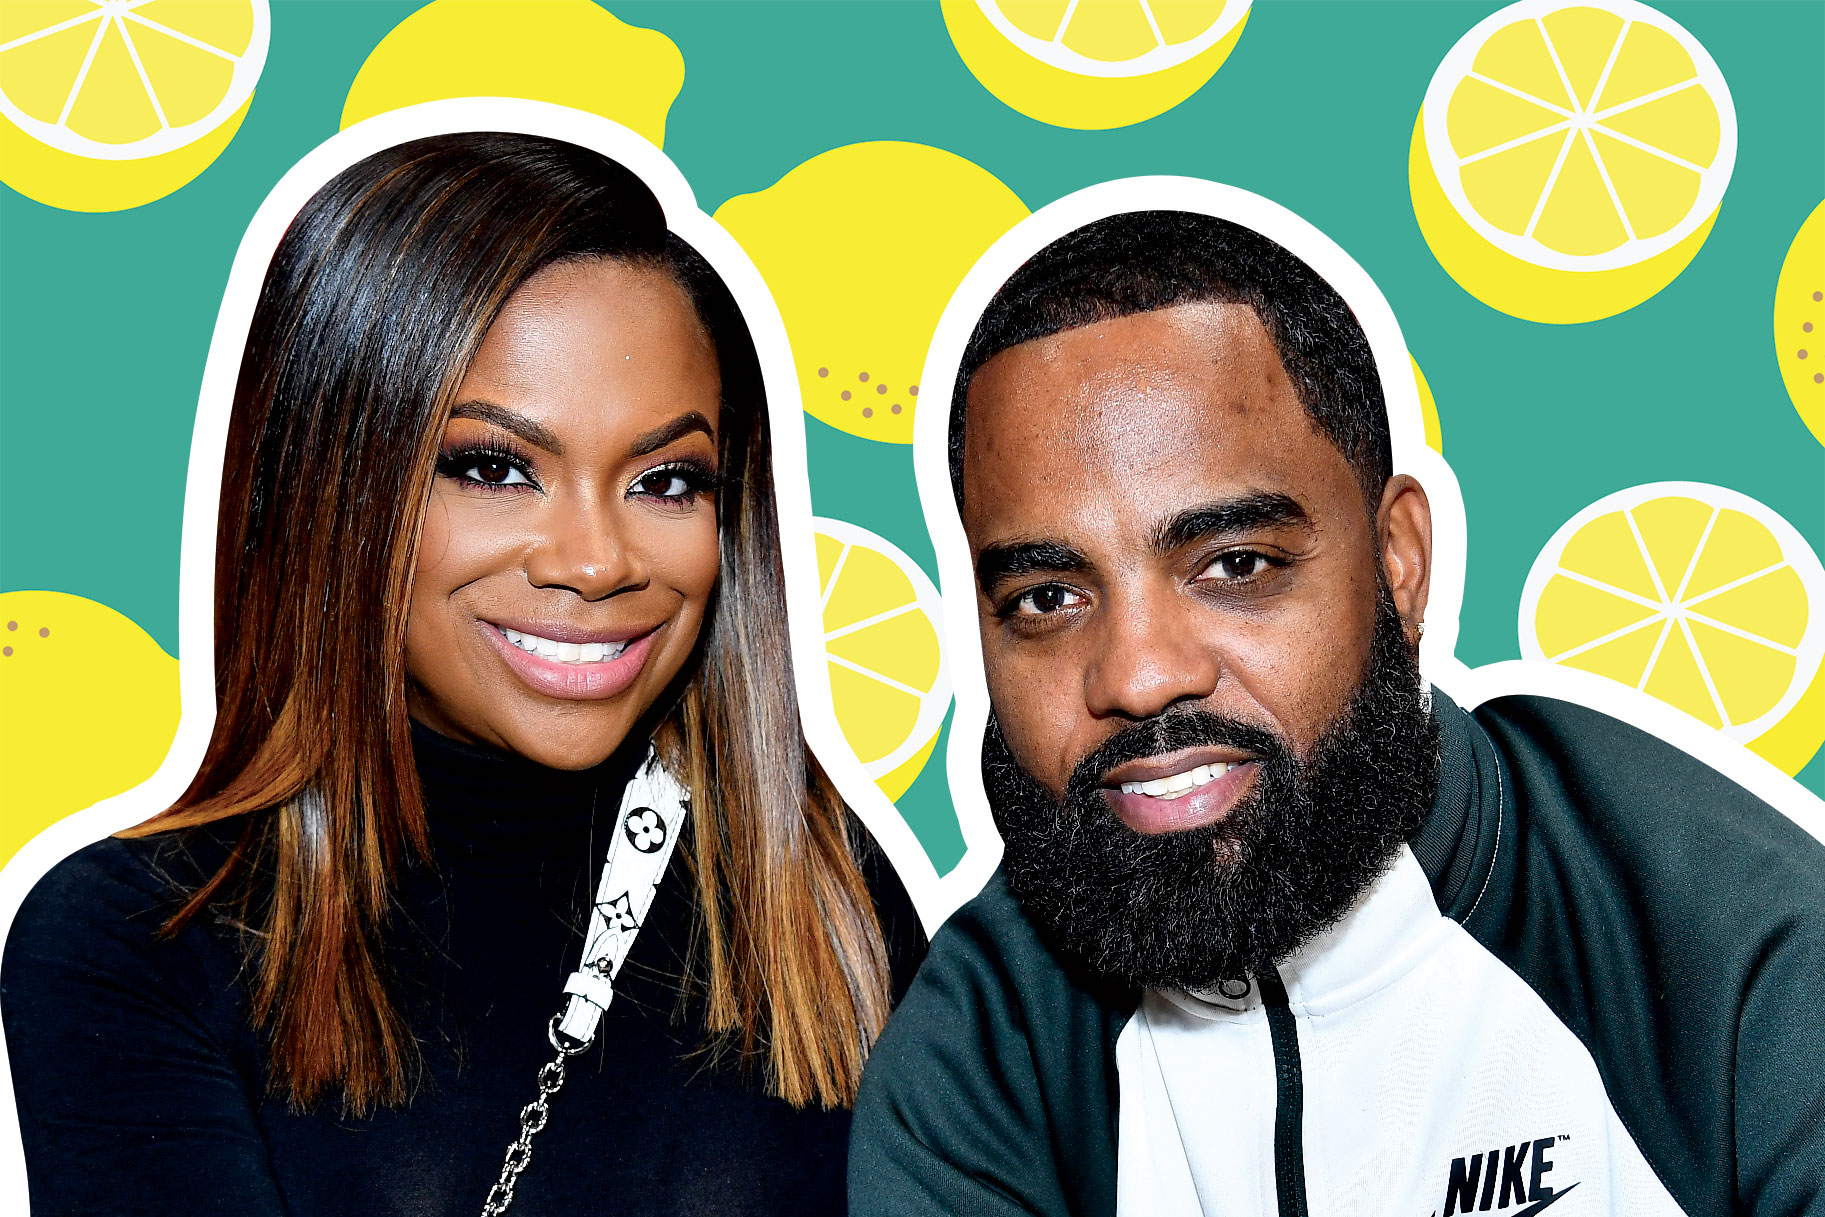 kandi-burruss-husband-todd-tucker-shows-off-his-new-look-check-out-kandis-recent-video